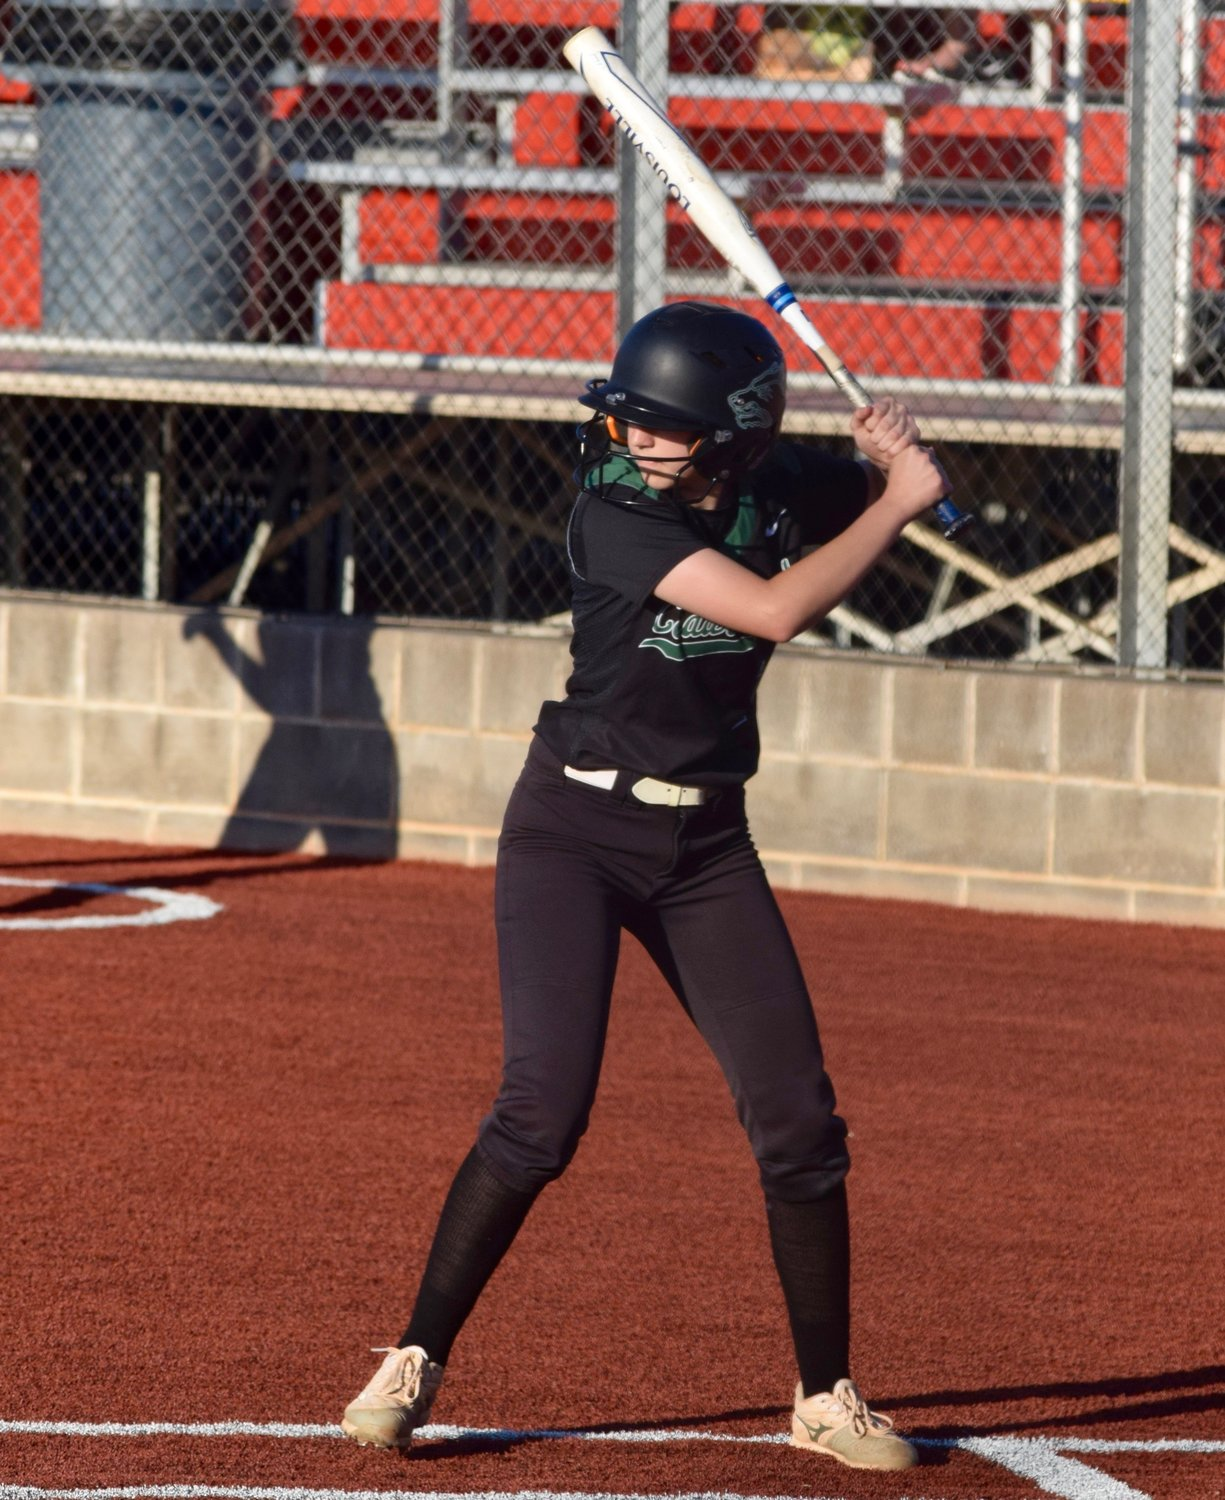 Kathryn Marshall and Cedar Park lost to East View 4-3 in extra innings on Friday to bring the Lady Timberwolves' season to an end.